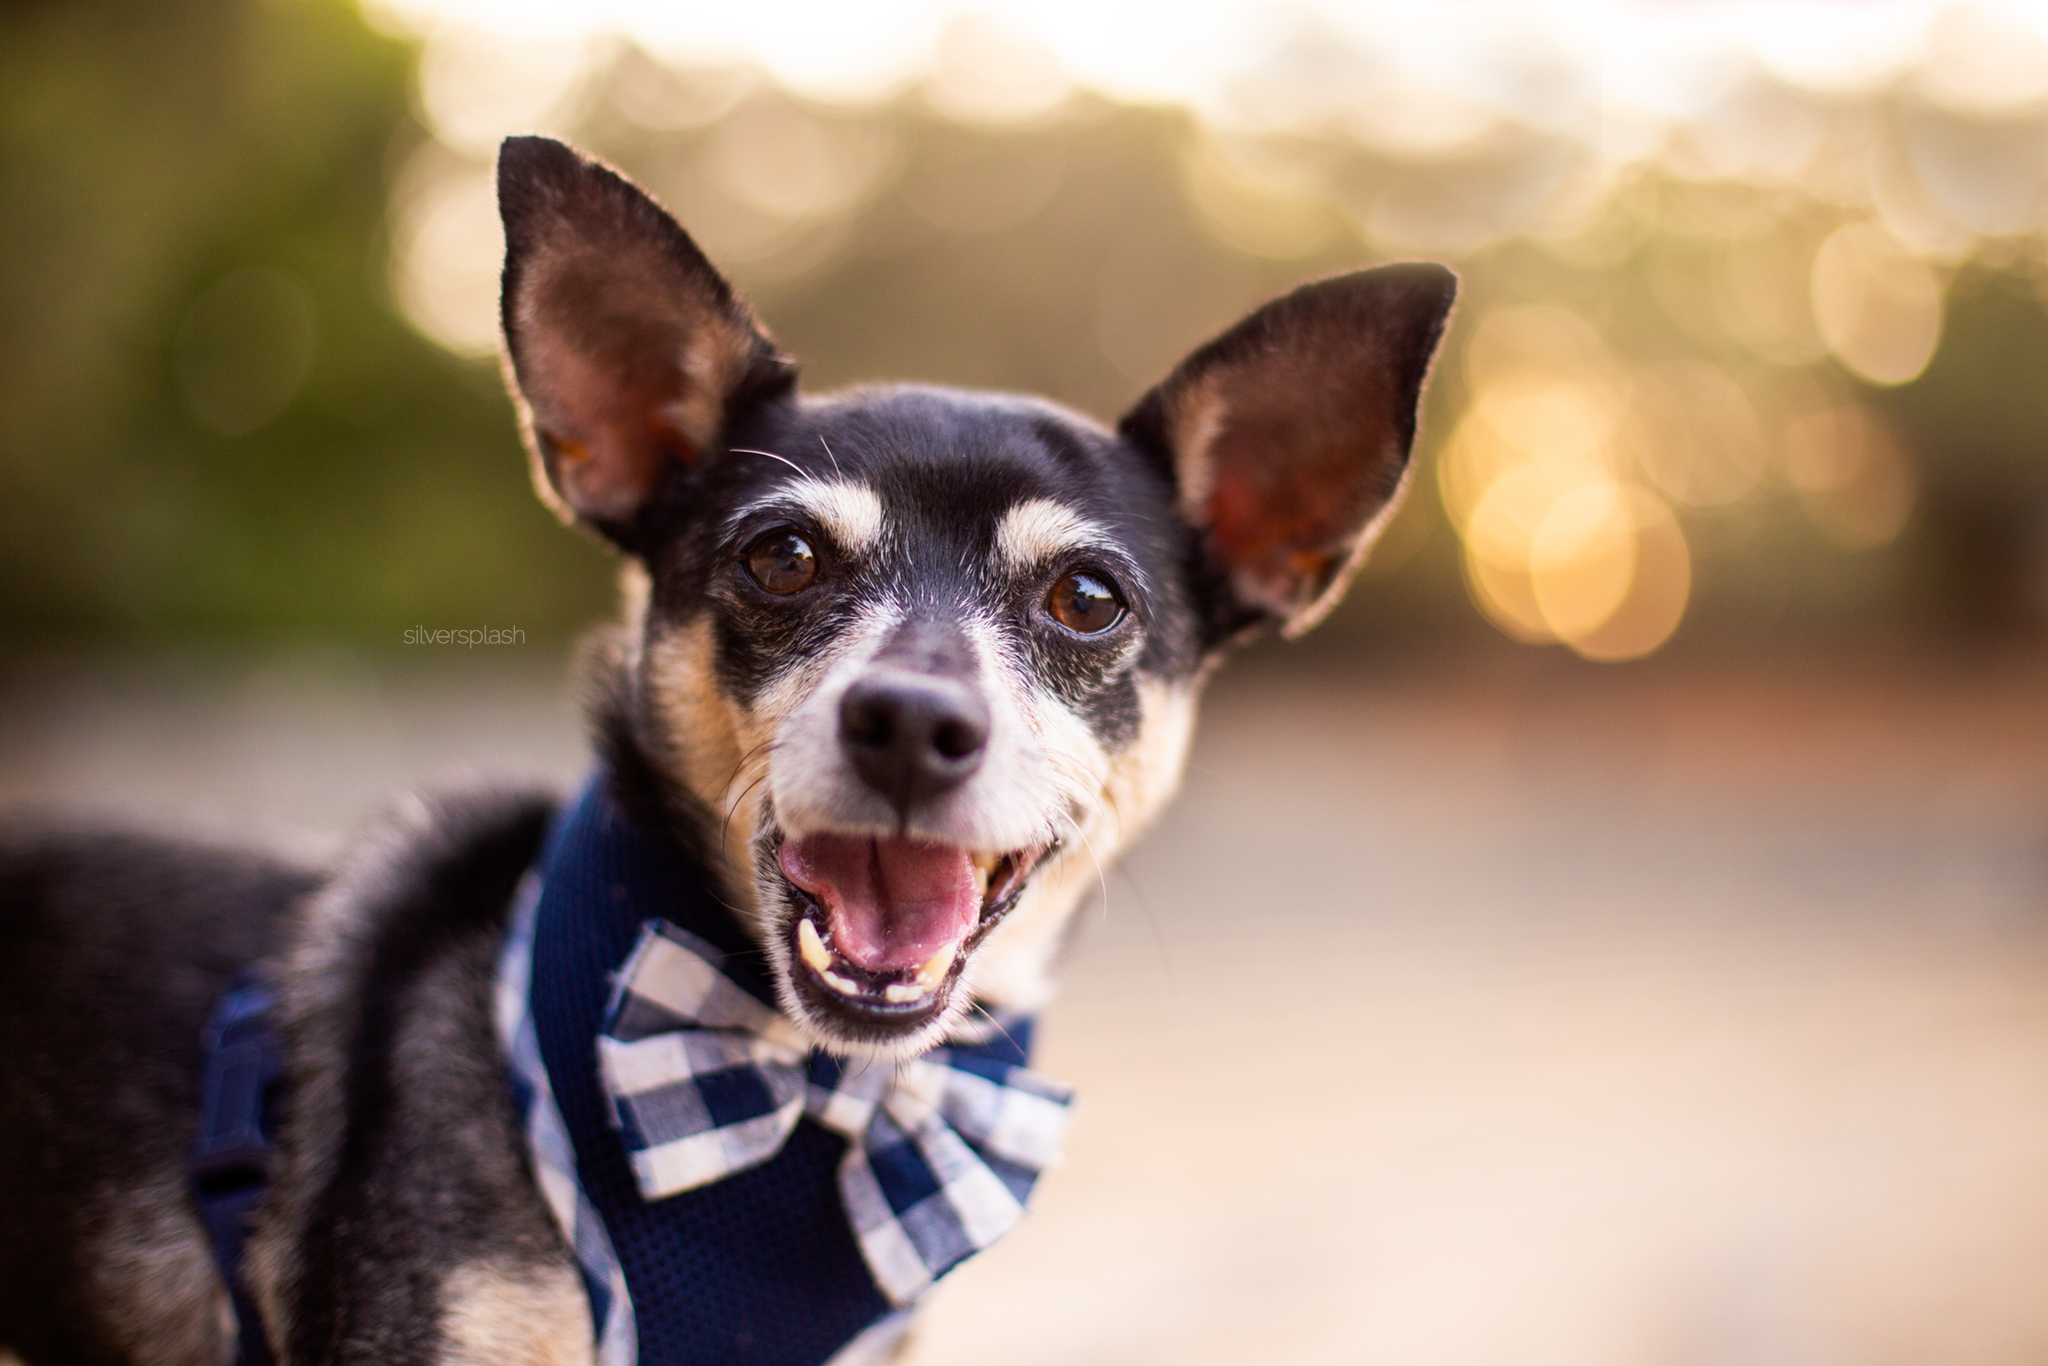 happy-chihuahua-dog-silver-splash-photography.jpg